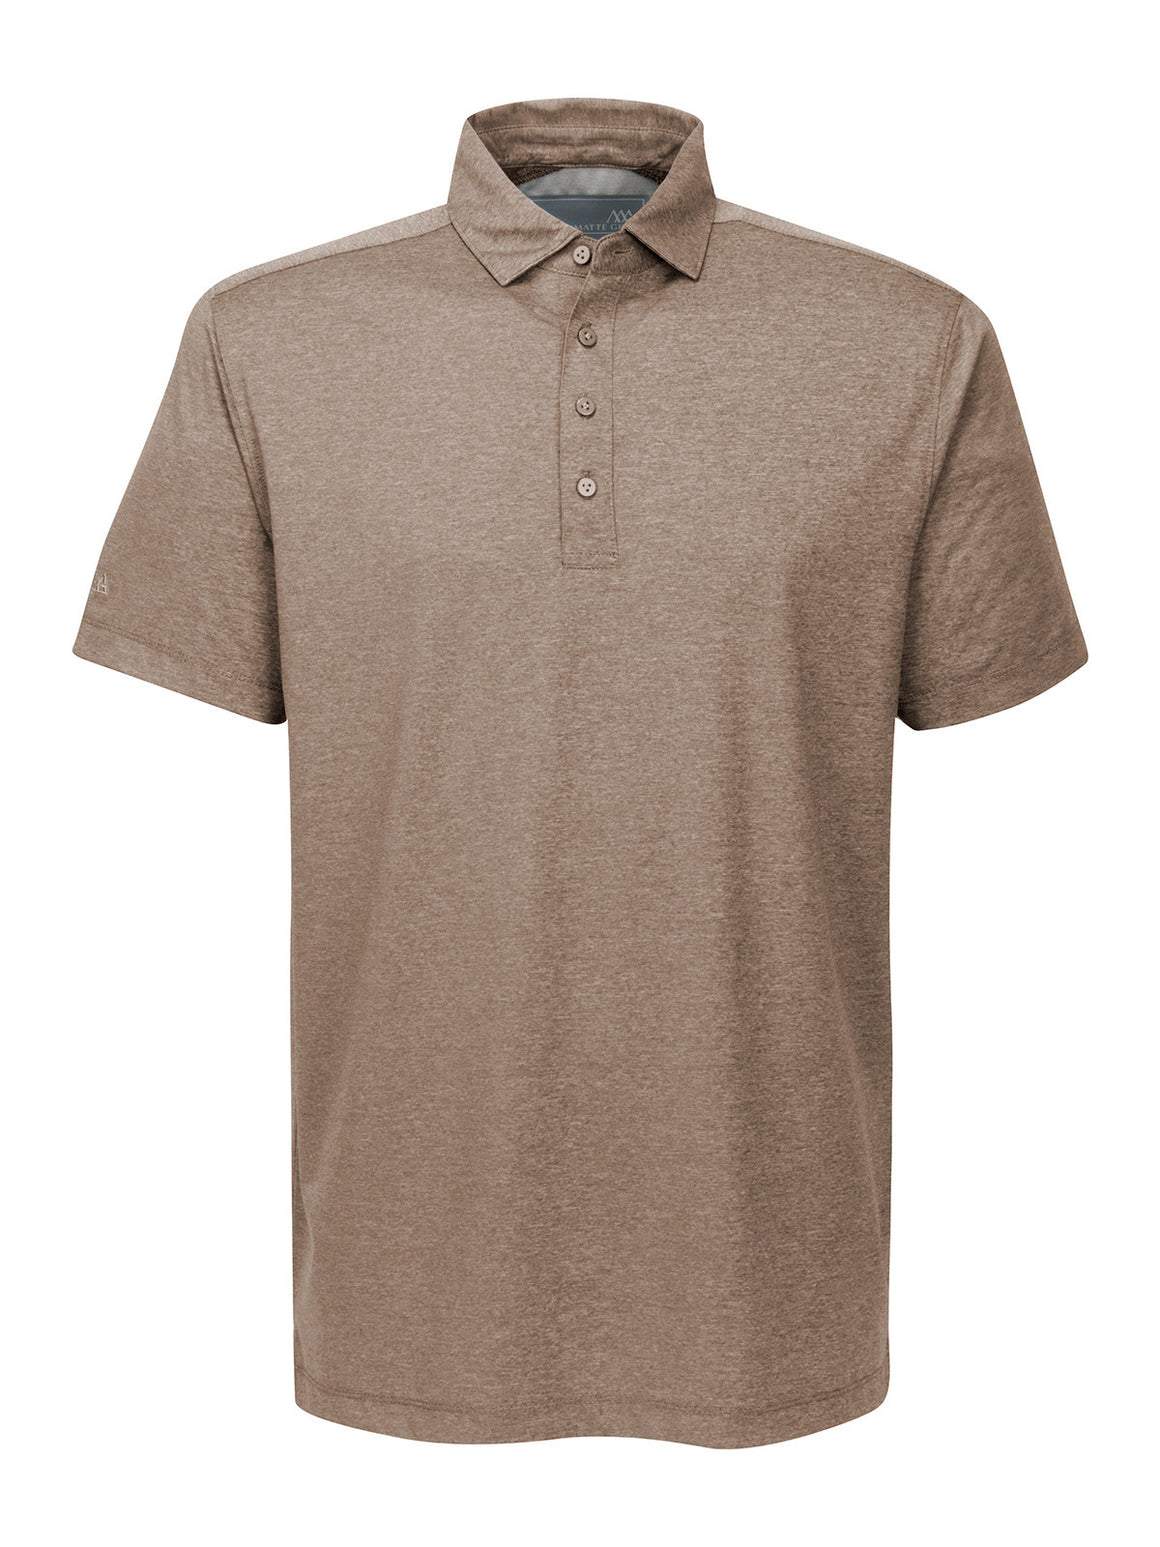 Captain - Dark Taupe Heather (Vista Blue)